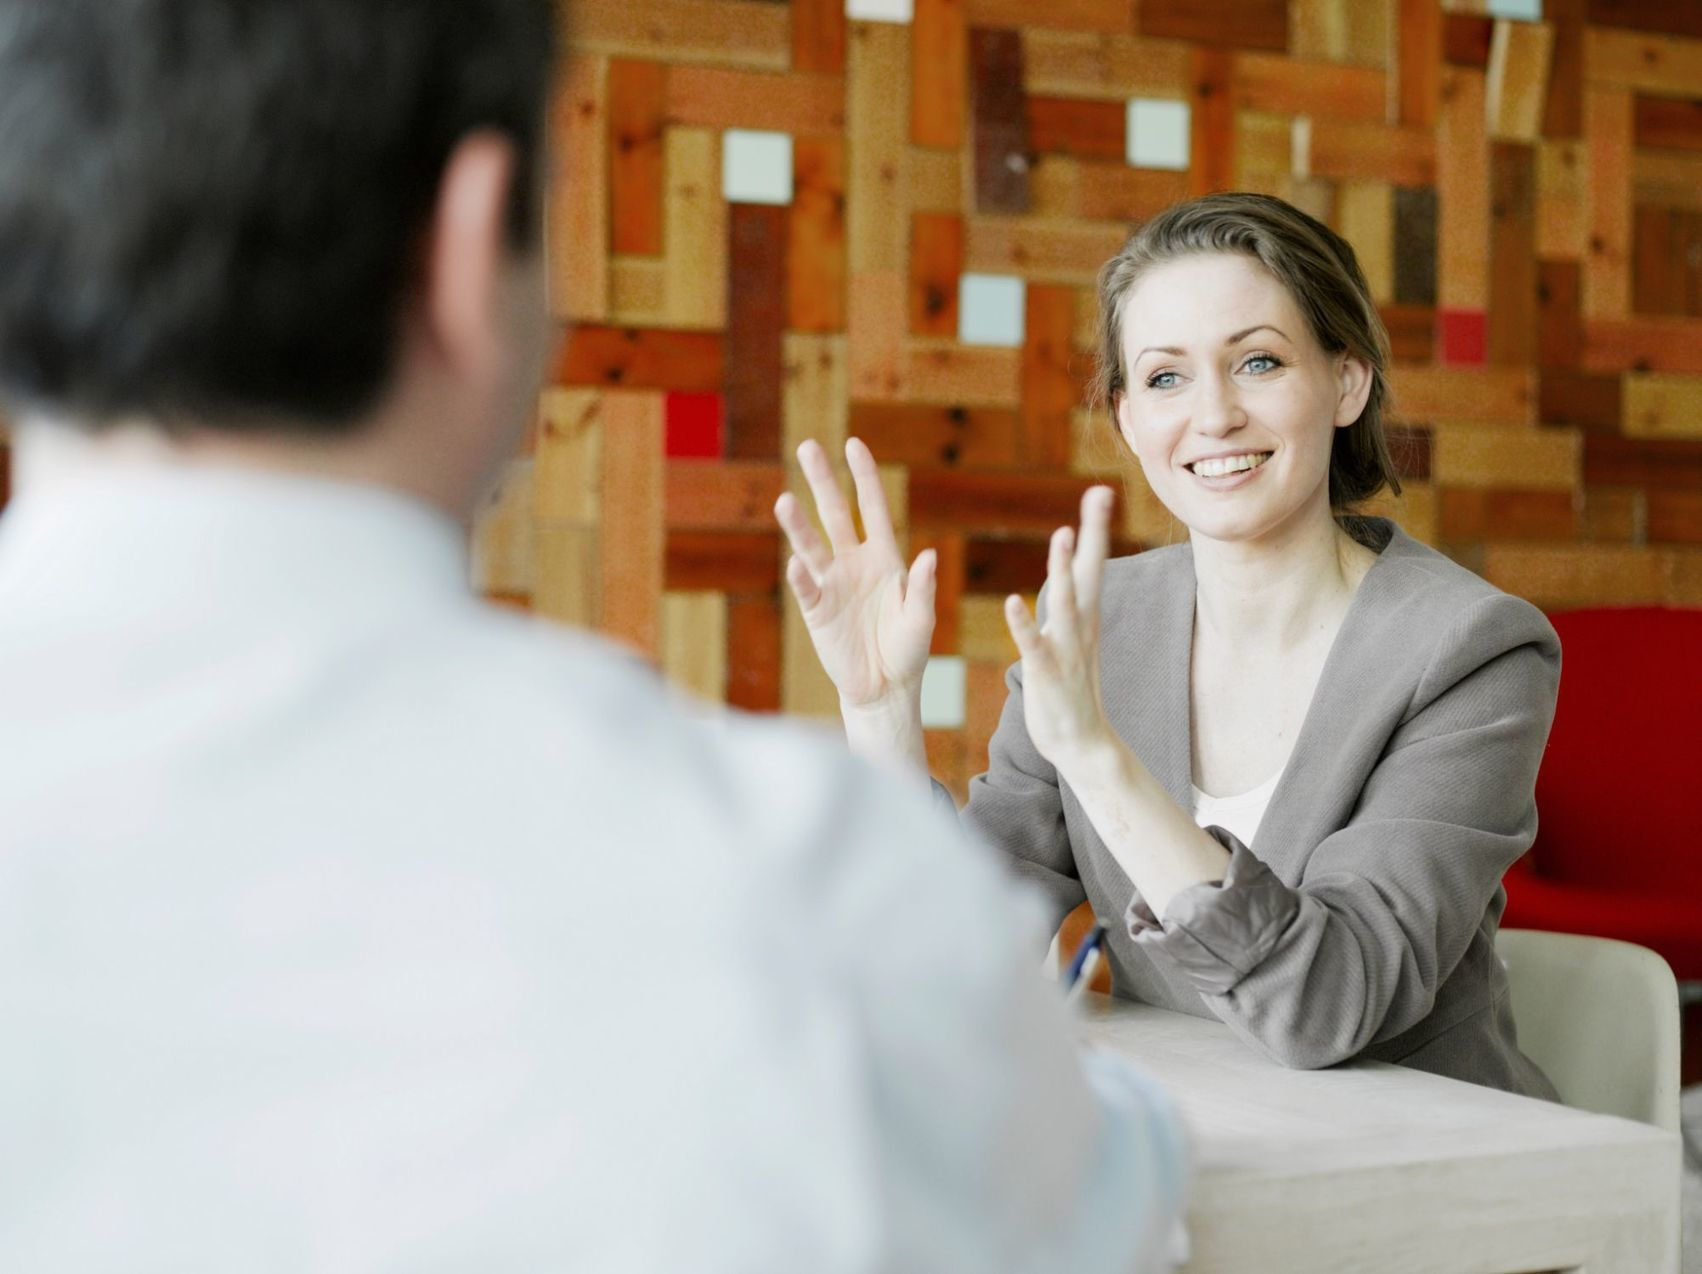 10 Ways to Make the Worst Impression at a Job Interview